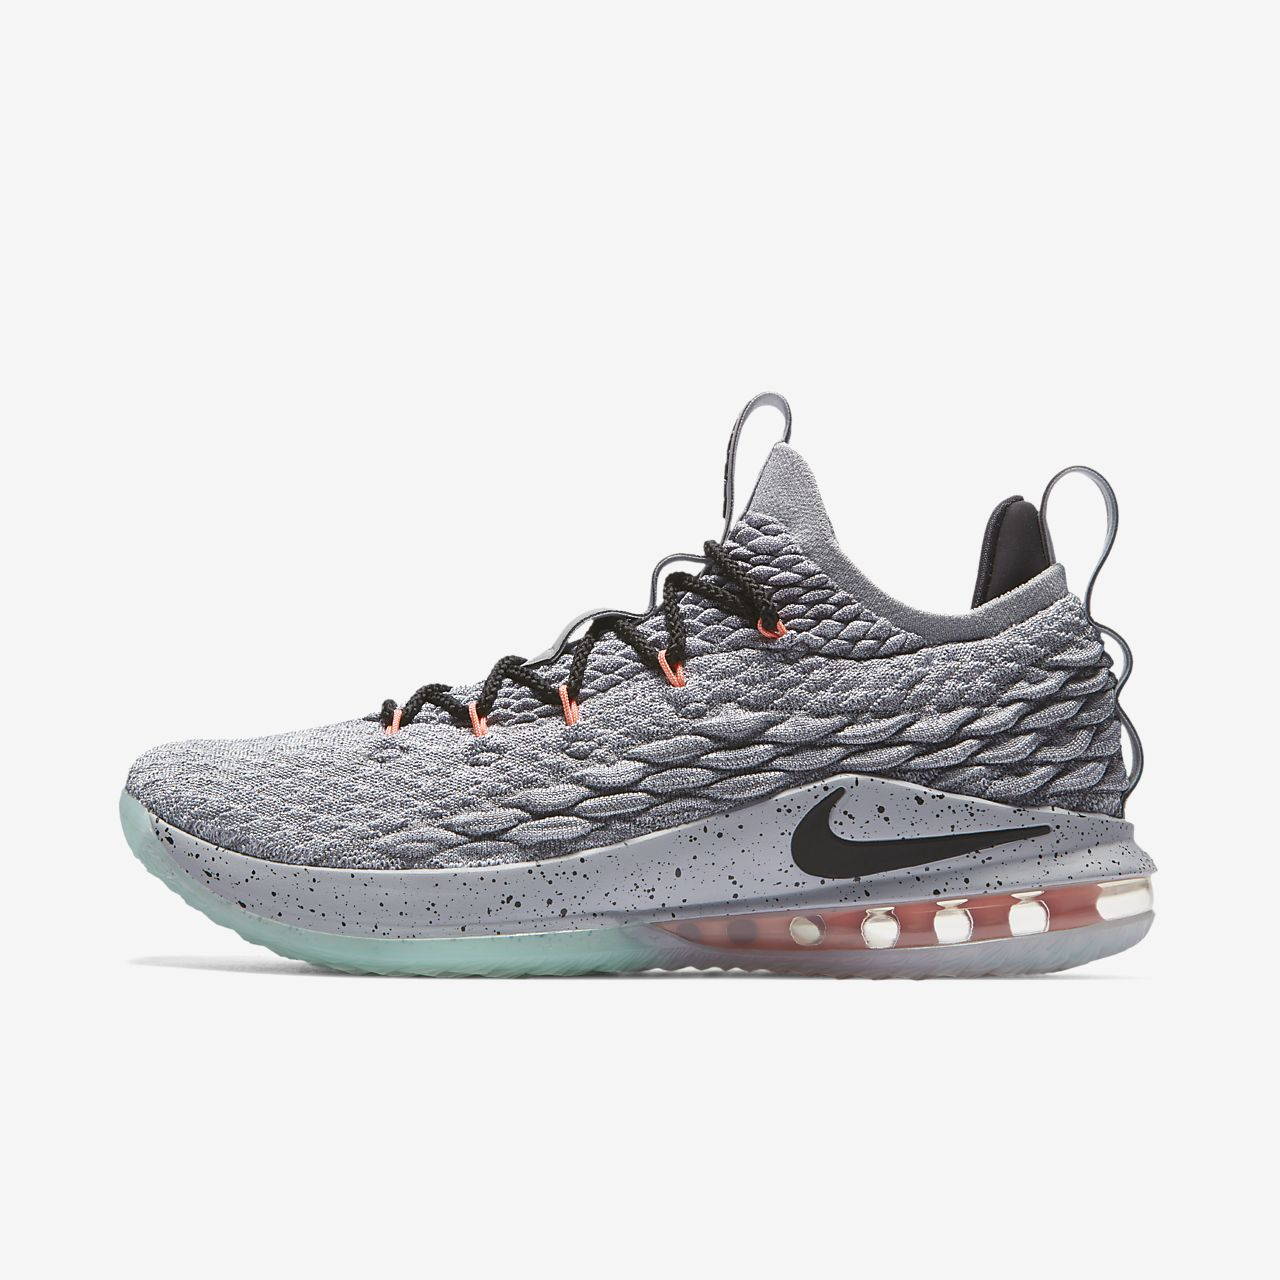 wholesale dealer 4a4c6 f75a5 ... LeBron 15 Low Basketball Shoe